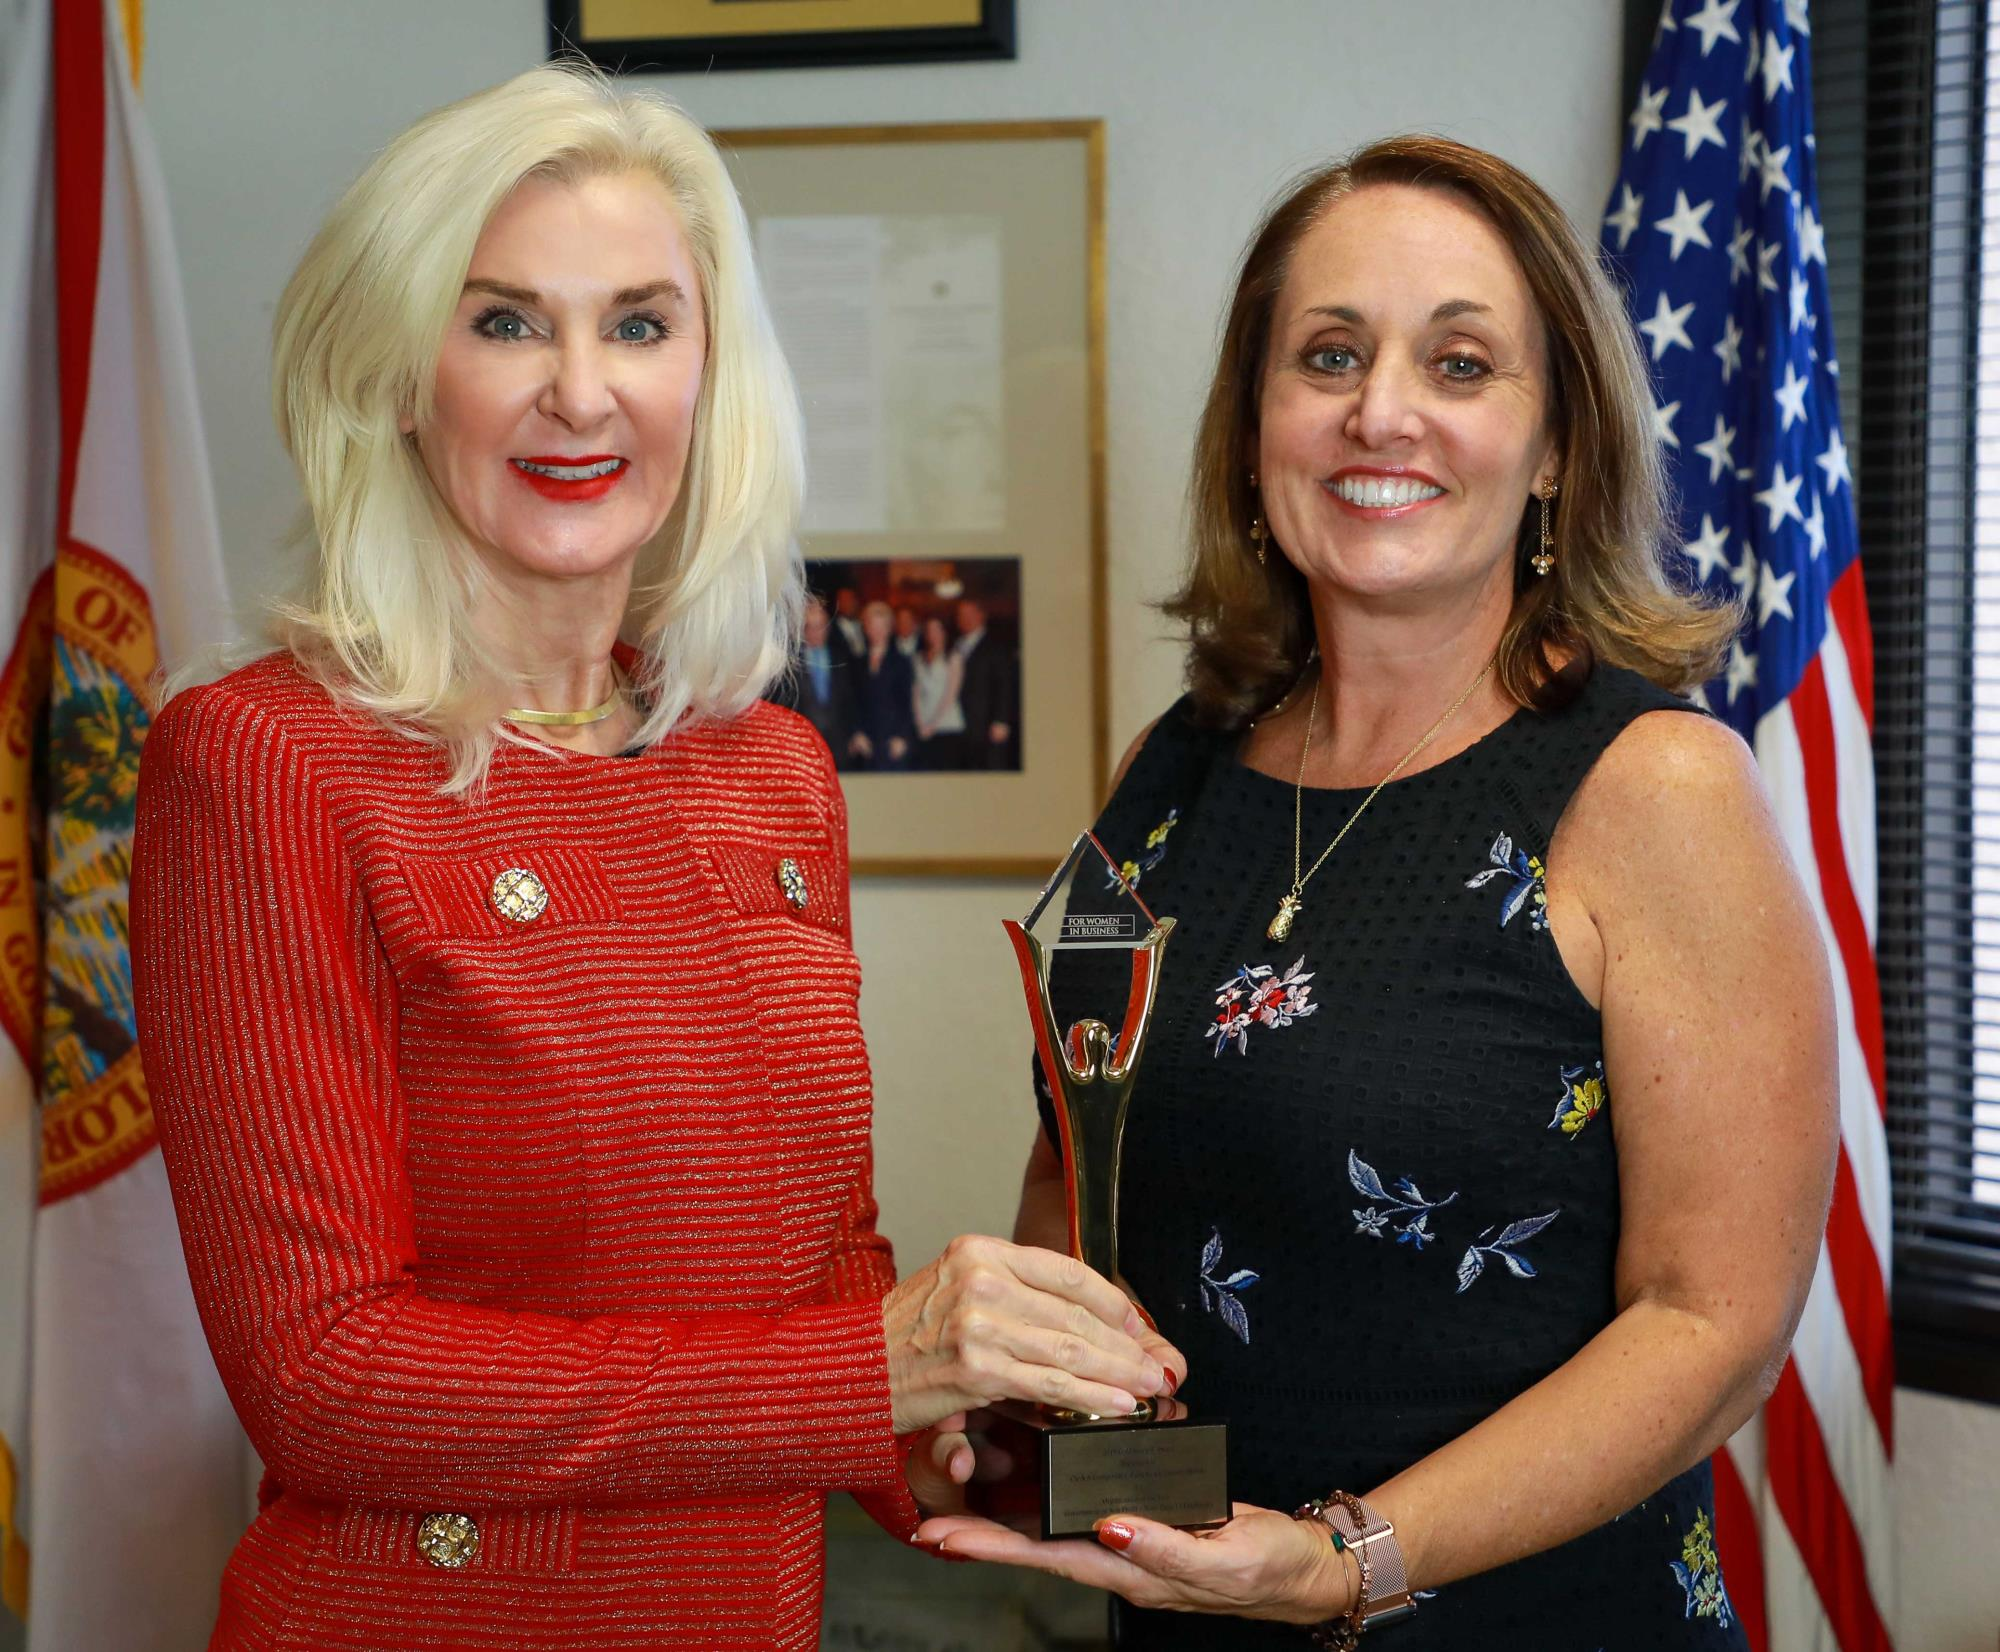 Clerk Sharon R. Bock and Chief Operating Officer Shannon R. Chessman holding Stevie Award trophy